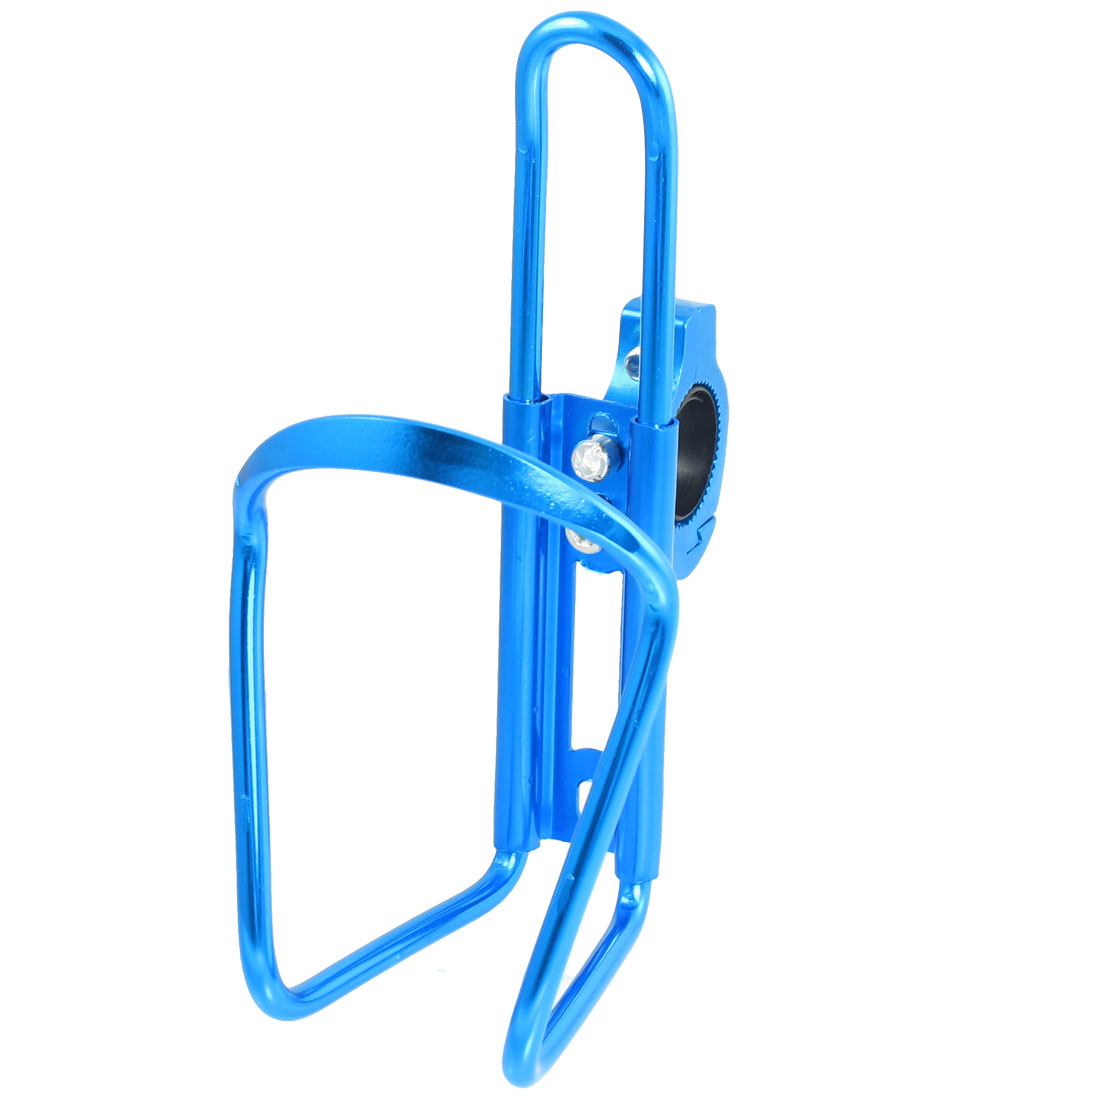 Sky Blue Aluminum Alloy Drink Water Bottle Holder Rack for Bike